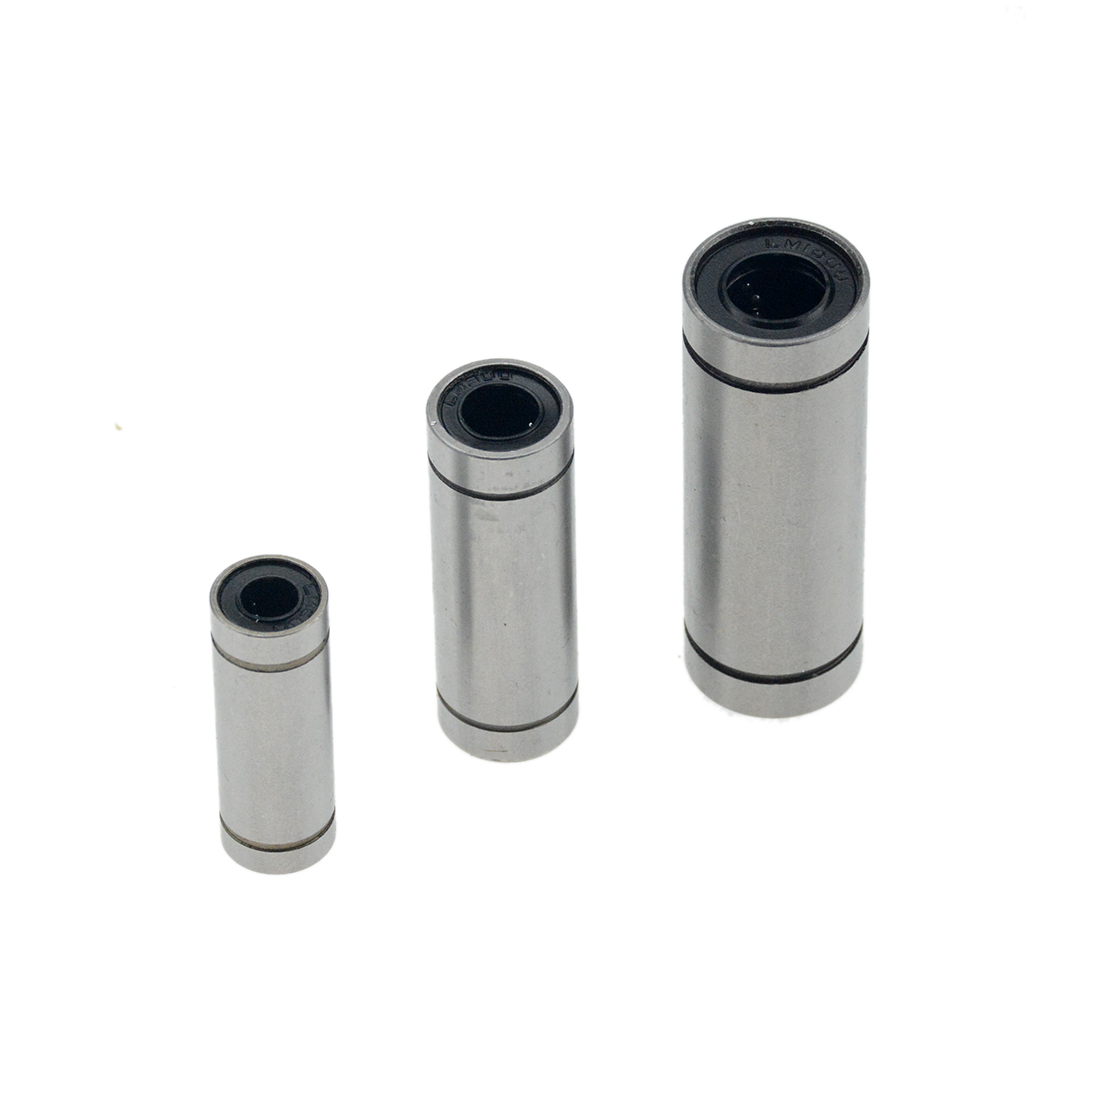 2Pcs LM6UU LM8UU LM10UU lengthen type Linear Ball Bearing for 3D Printer parts.